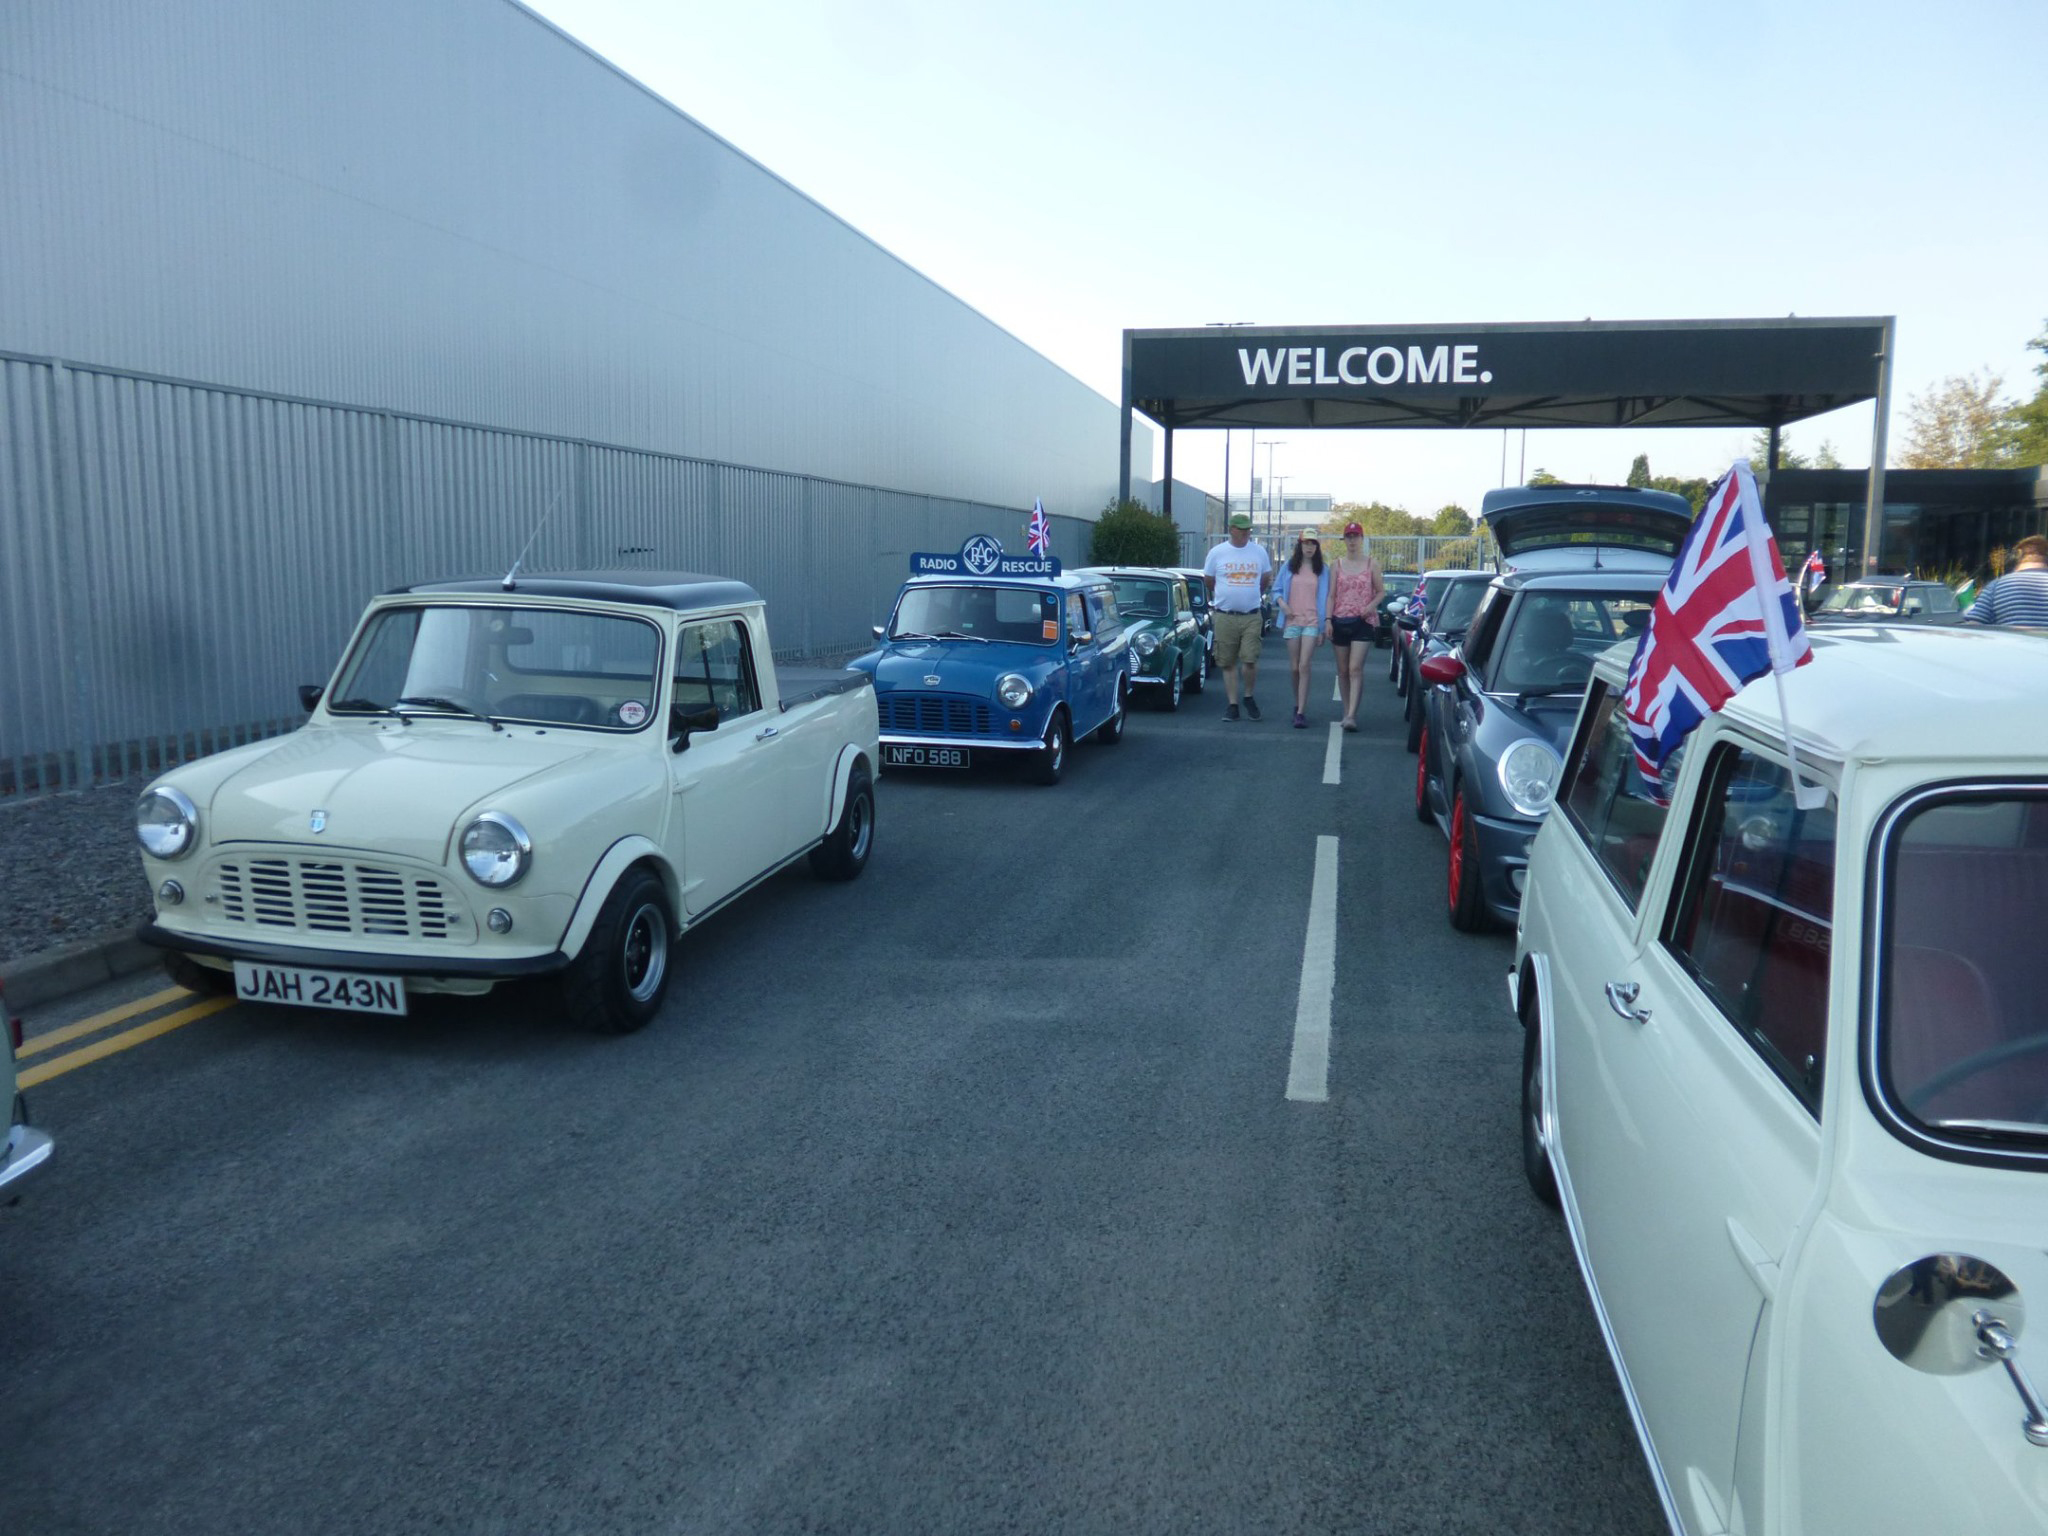 A view in between the Cavalcade with a white pick up style of the mini visible